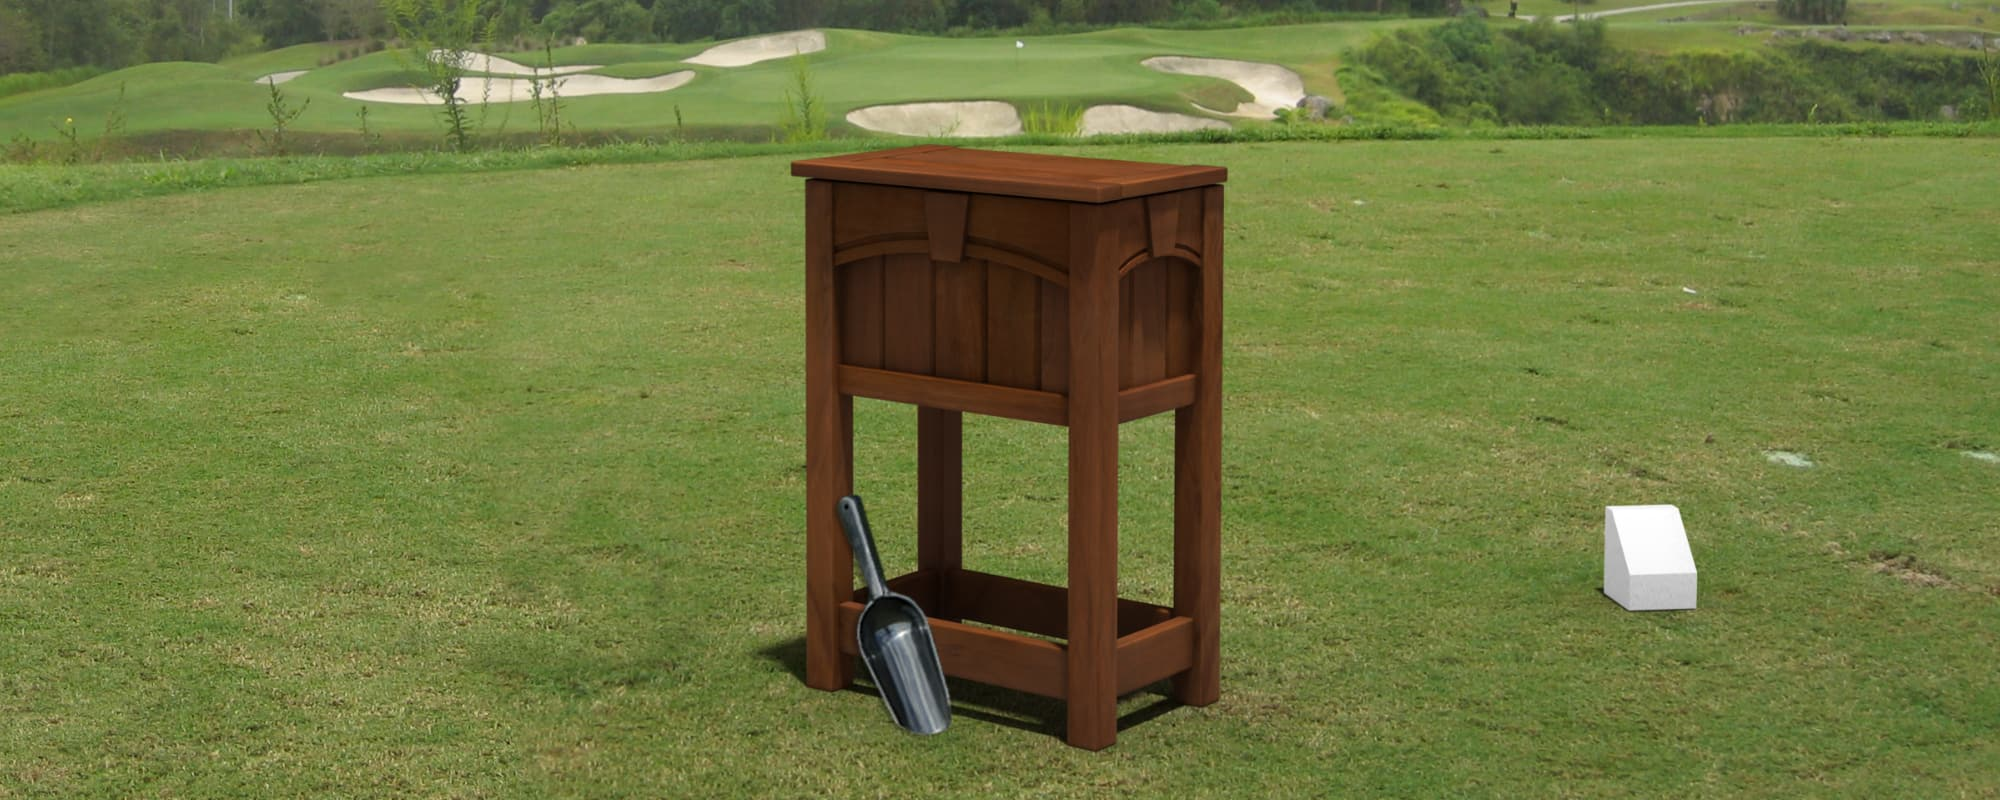 Divot Mix Storage hero image